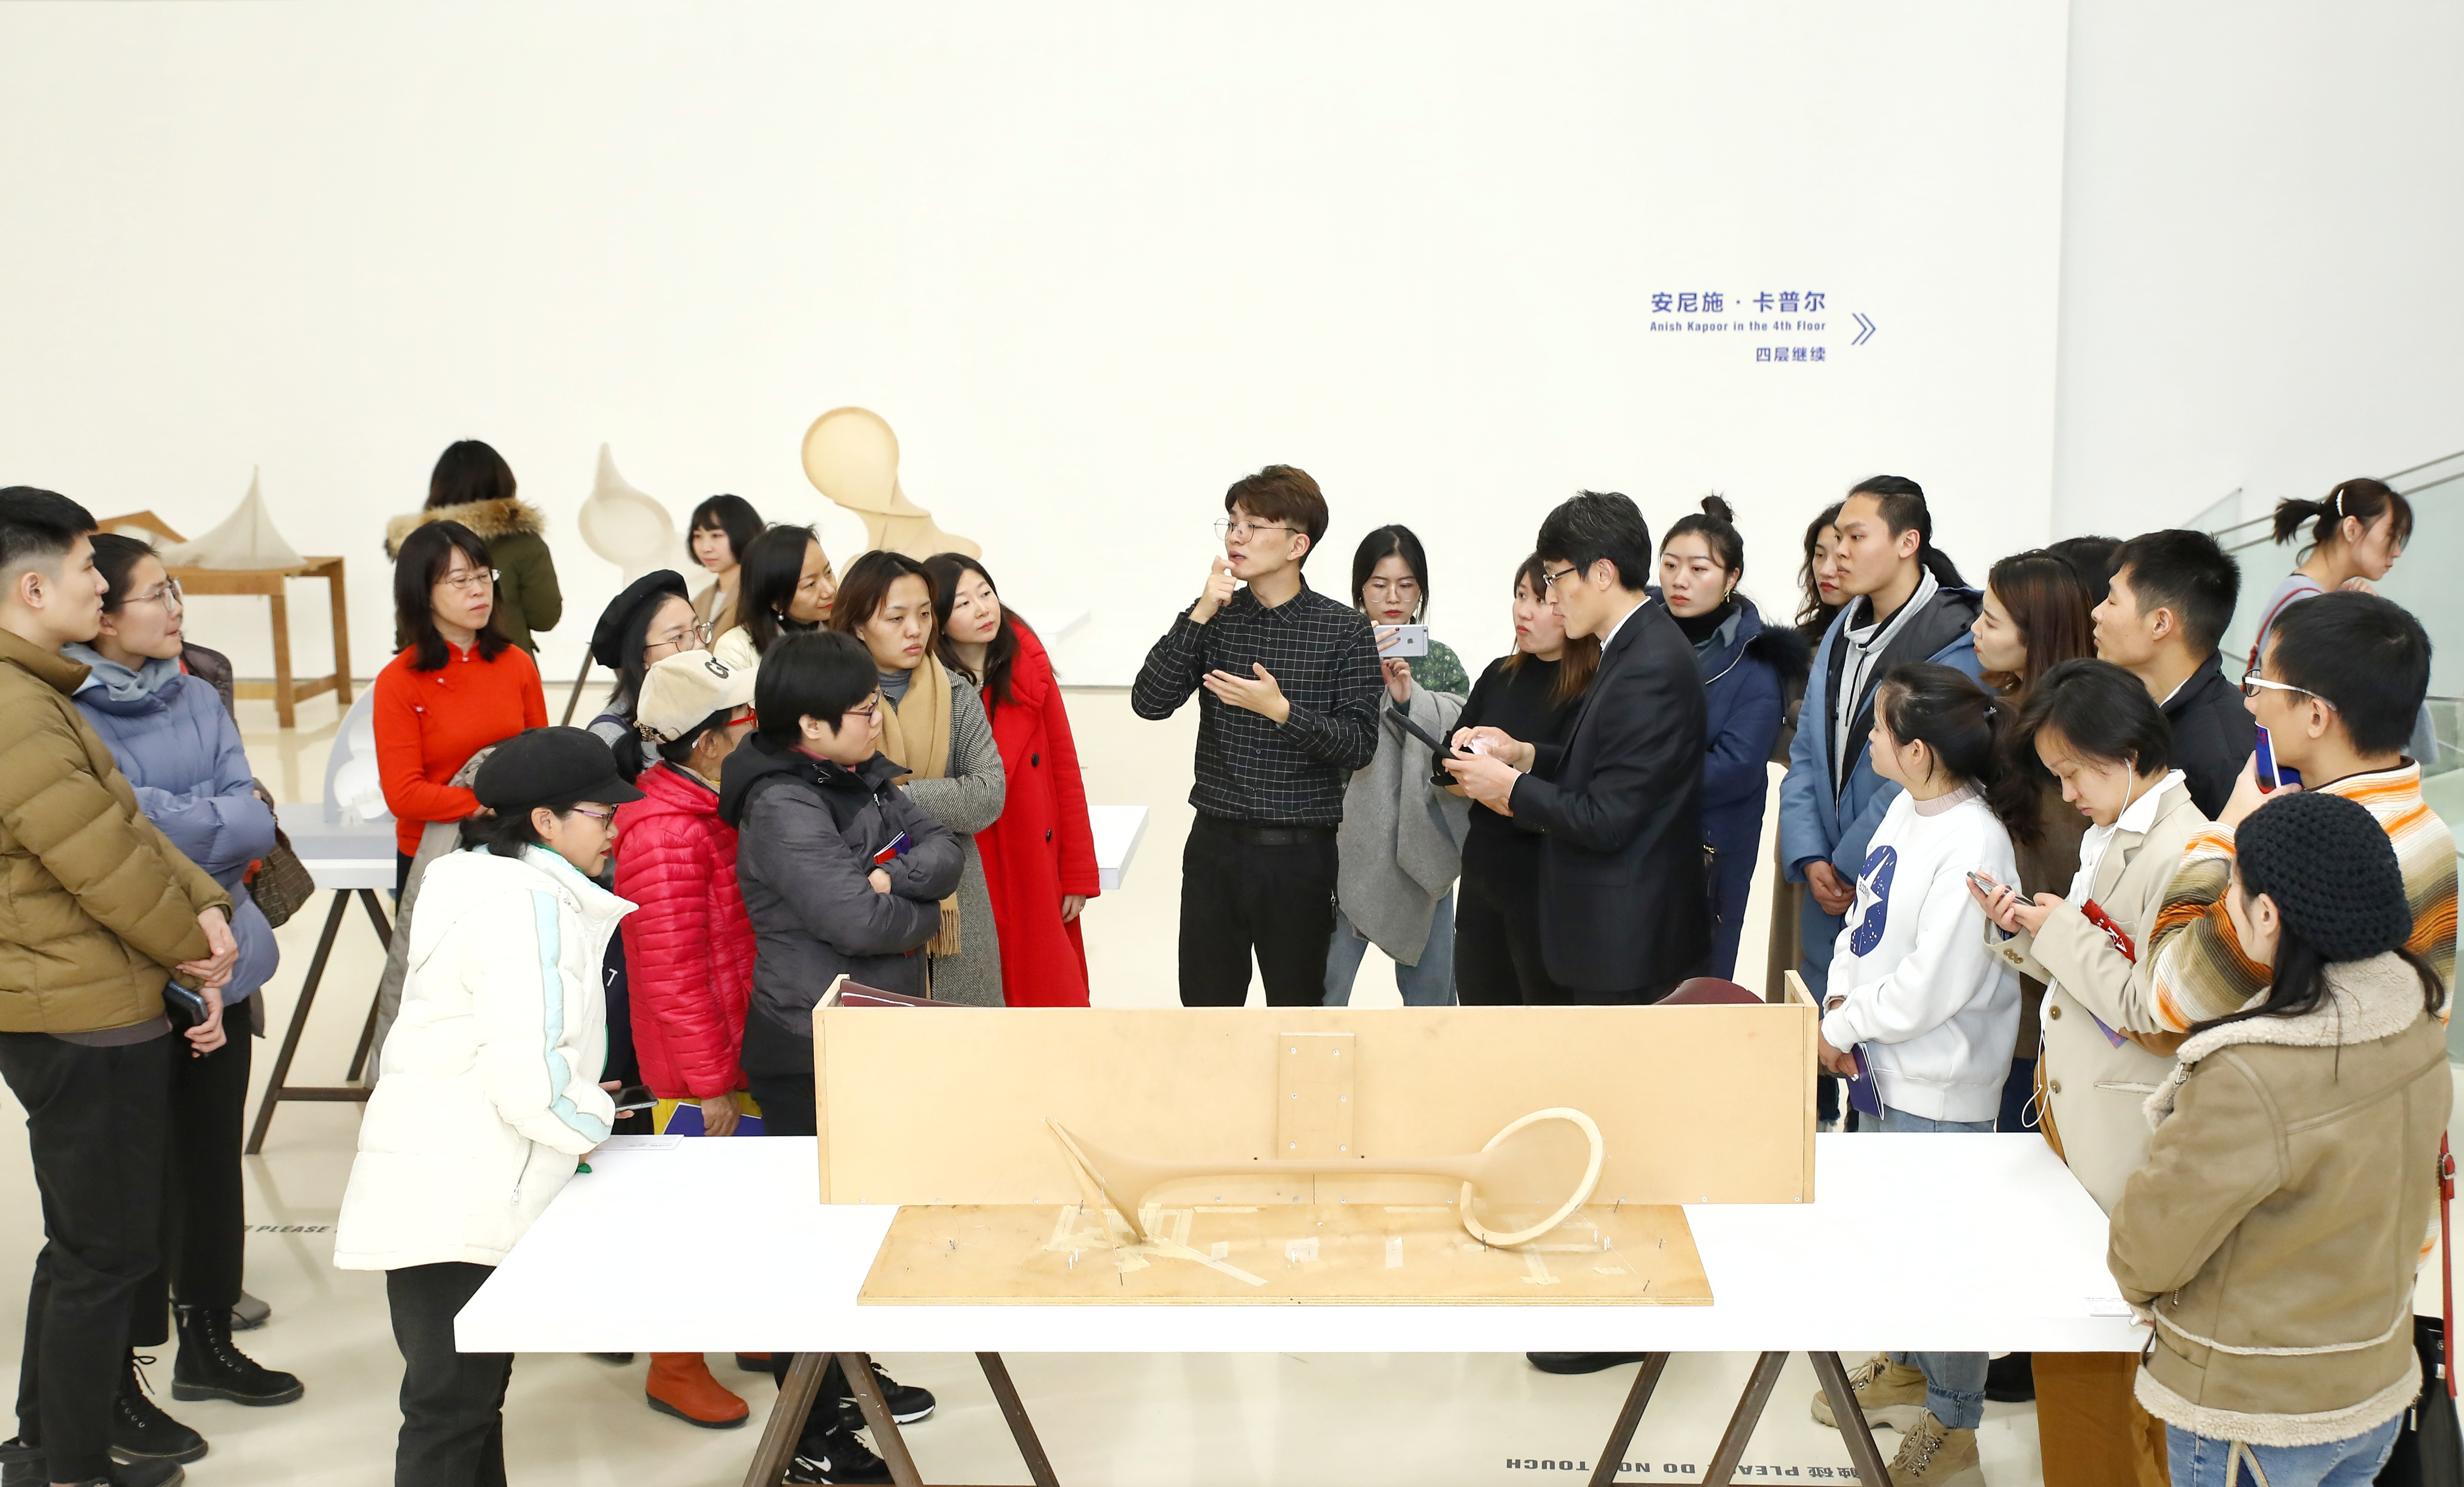 Barrier-free art exhibit opens in Beijing on World Disabled Day